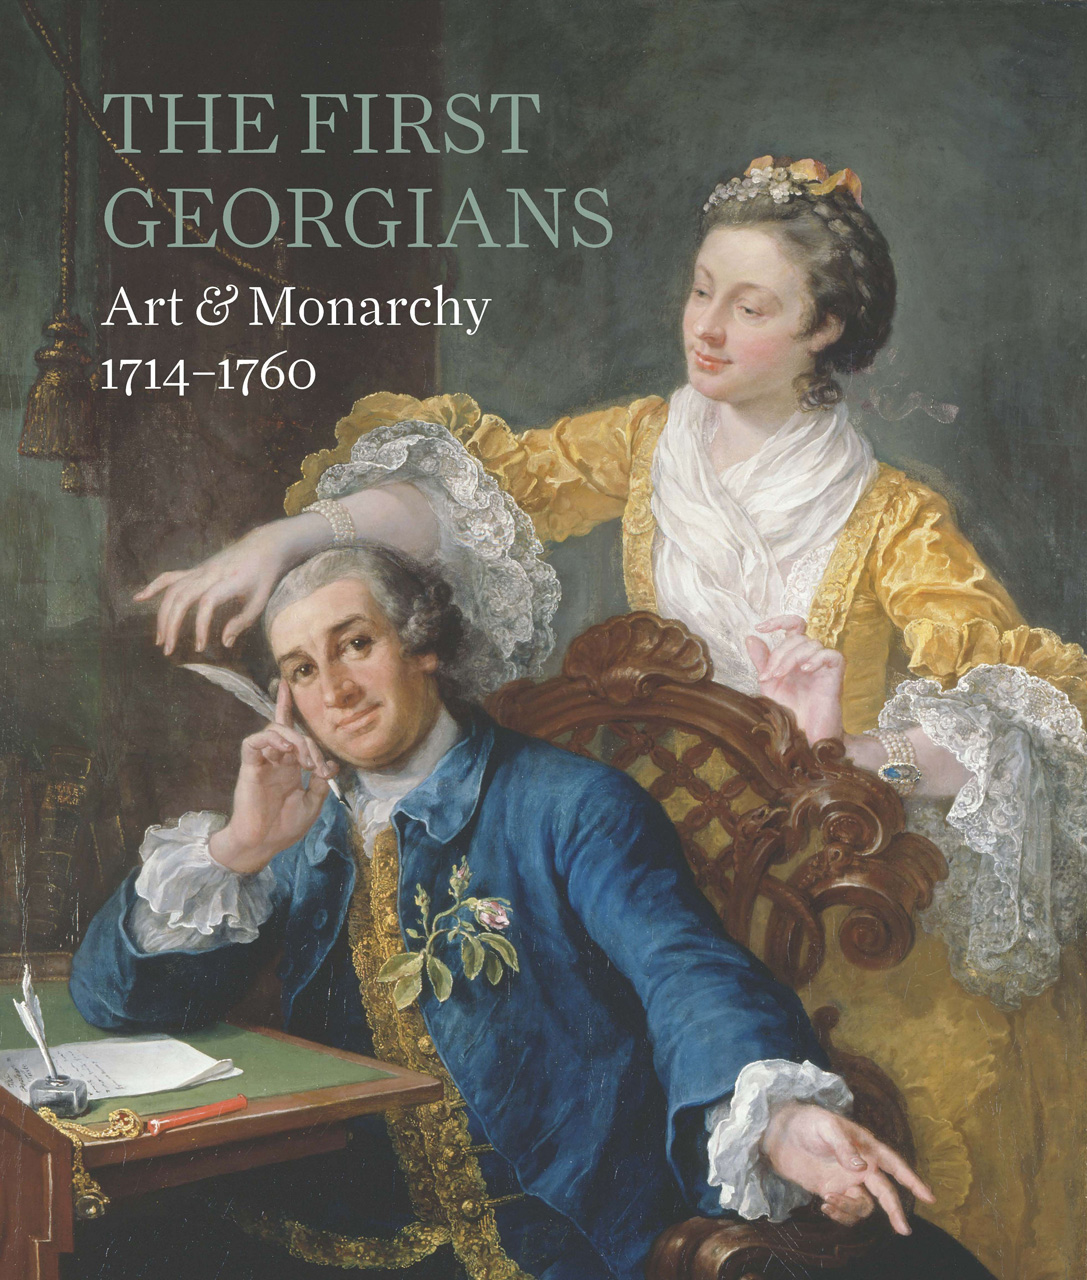 The First Georgians: Art and Monarchy, 1714-1760